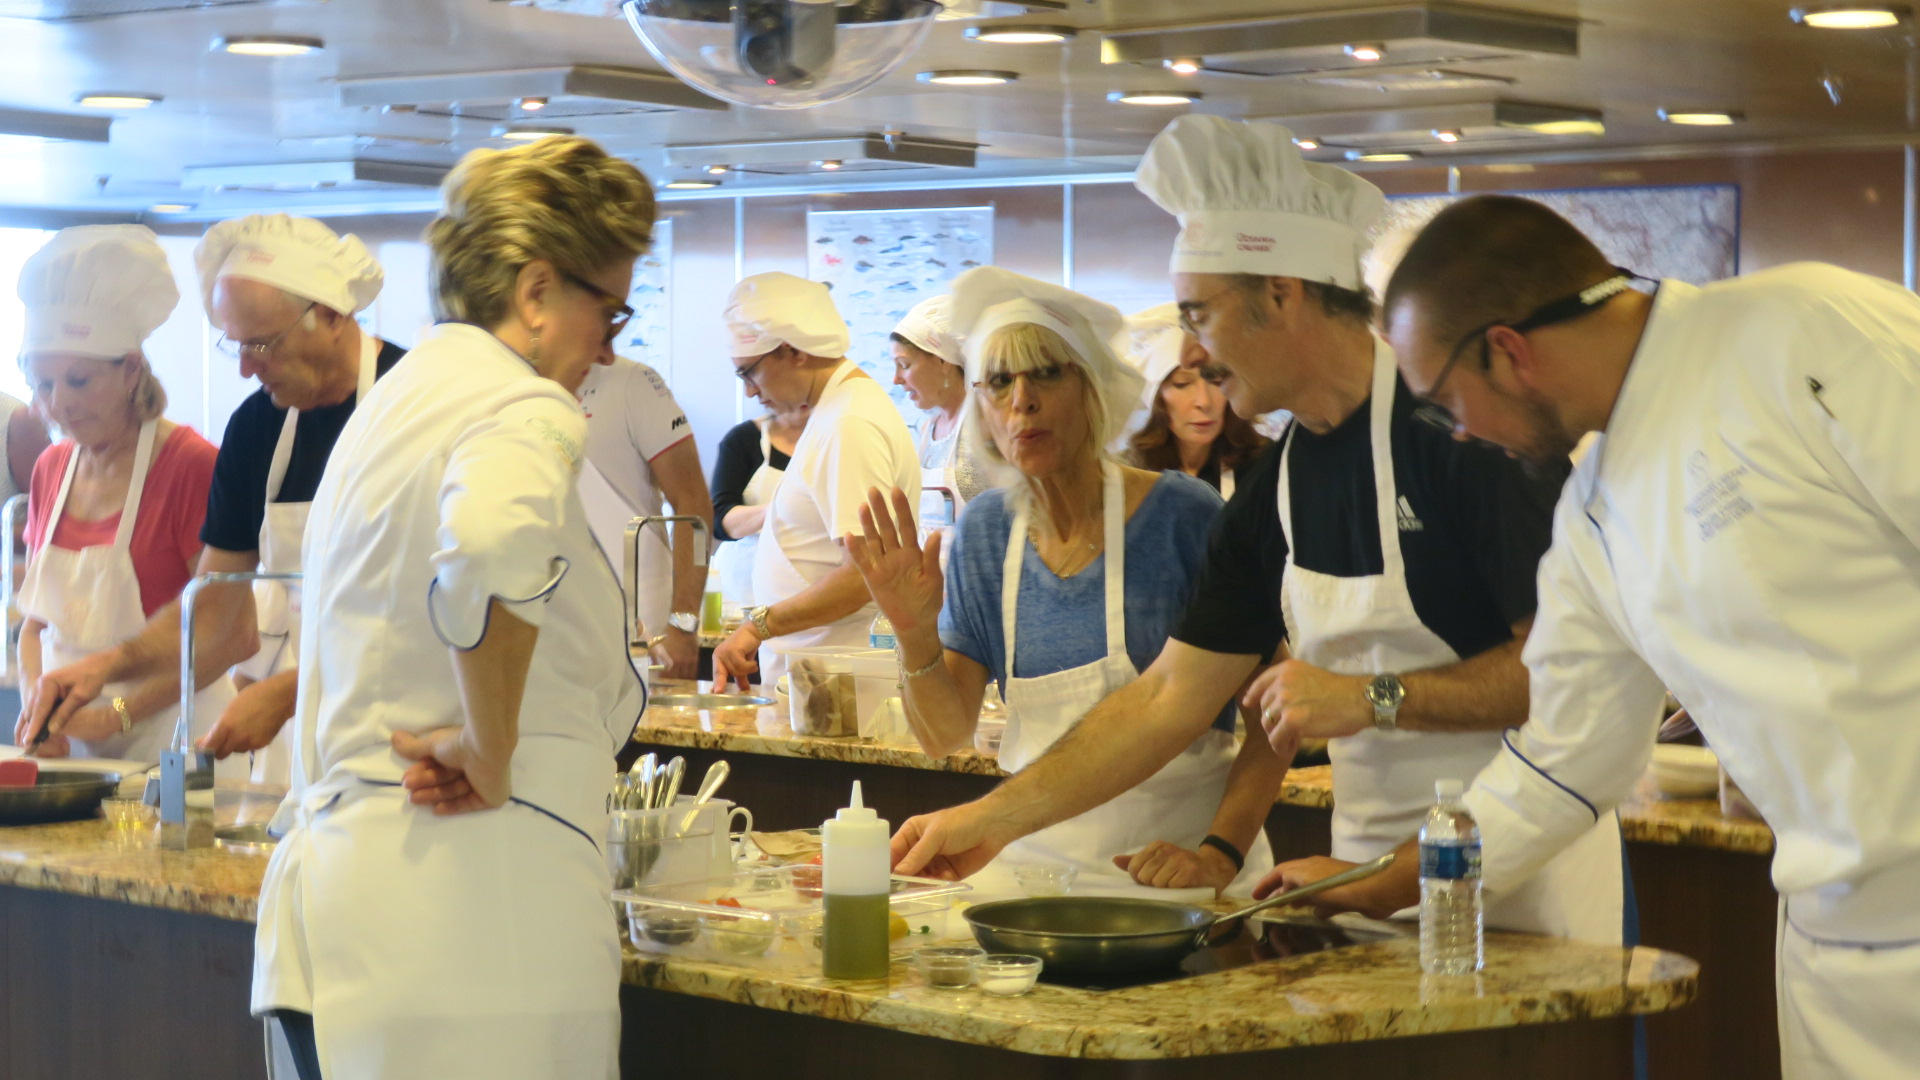 Oceania's Director of Culinary Enrichment Kathryn Kelly and Master Chef Karlis teach a class